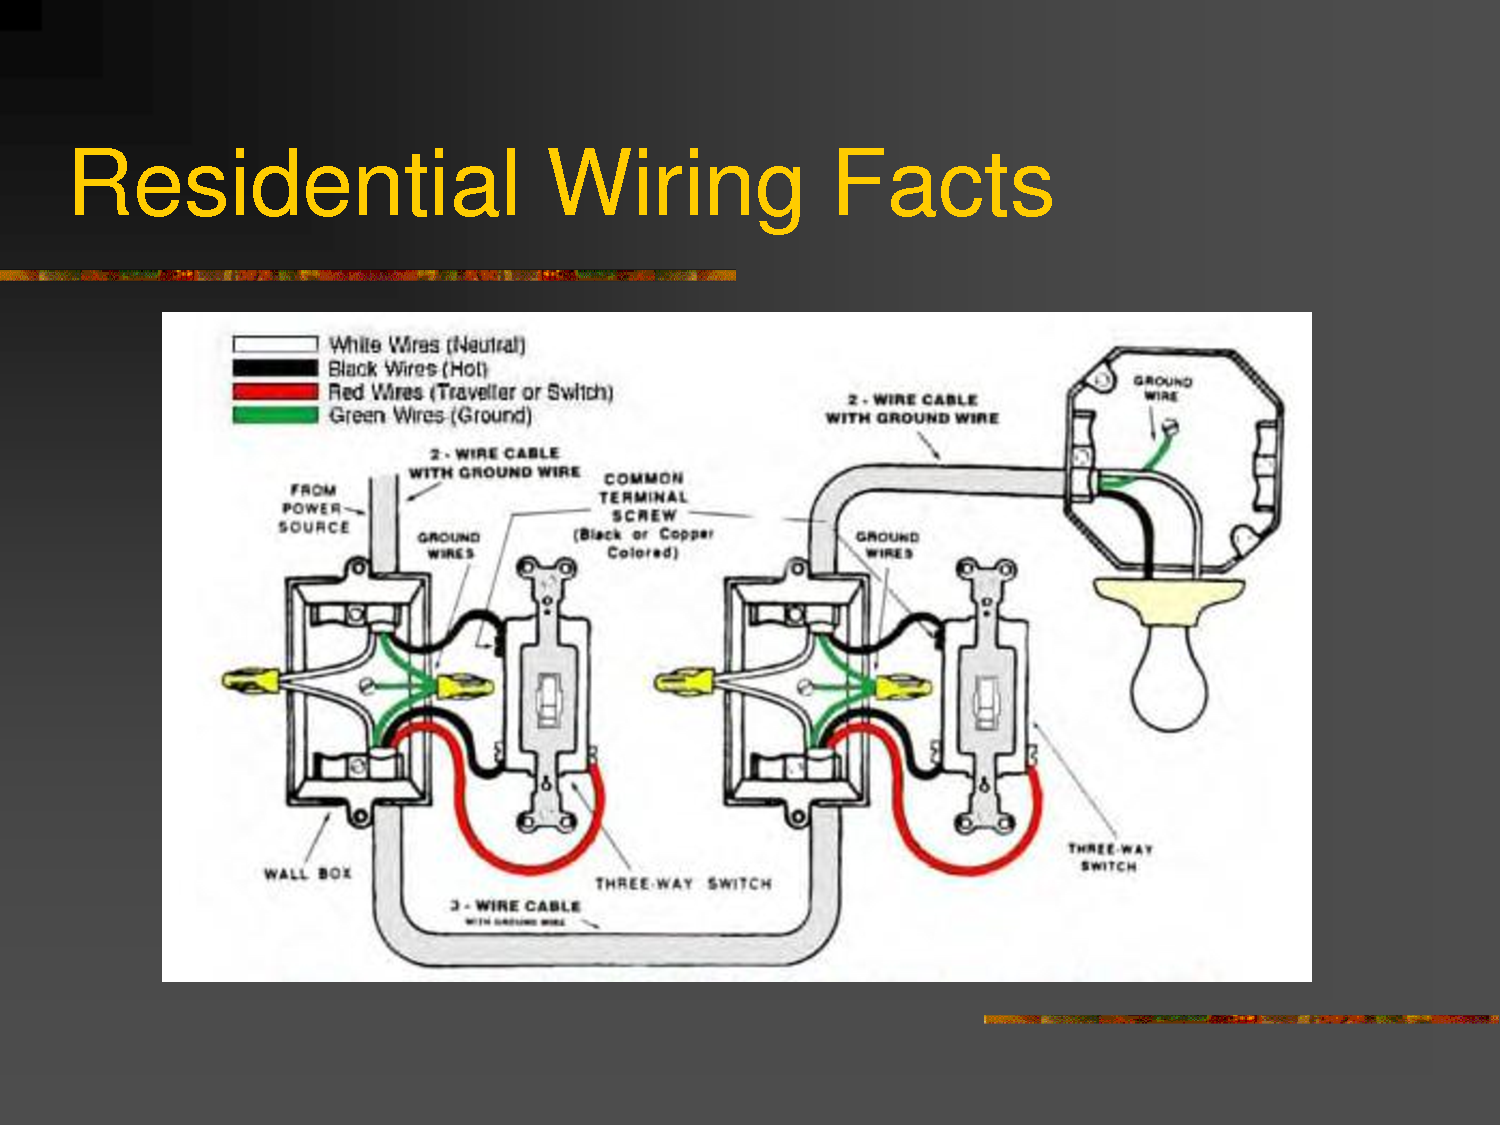 residential house wiring diagrams control wiring diagram \u2022 parallel circuit diagram house 4 best images of residential wiring diagrams house electrical rh pinterest com residential house wiring circuit diagram